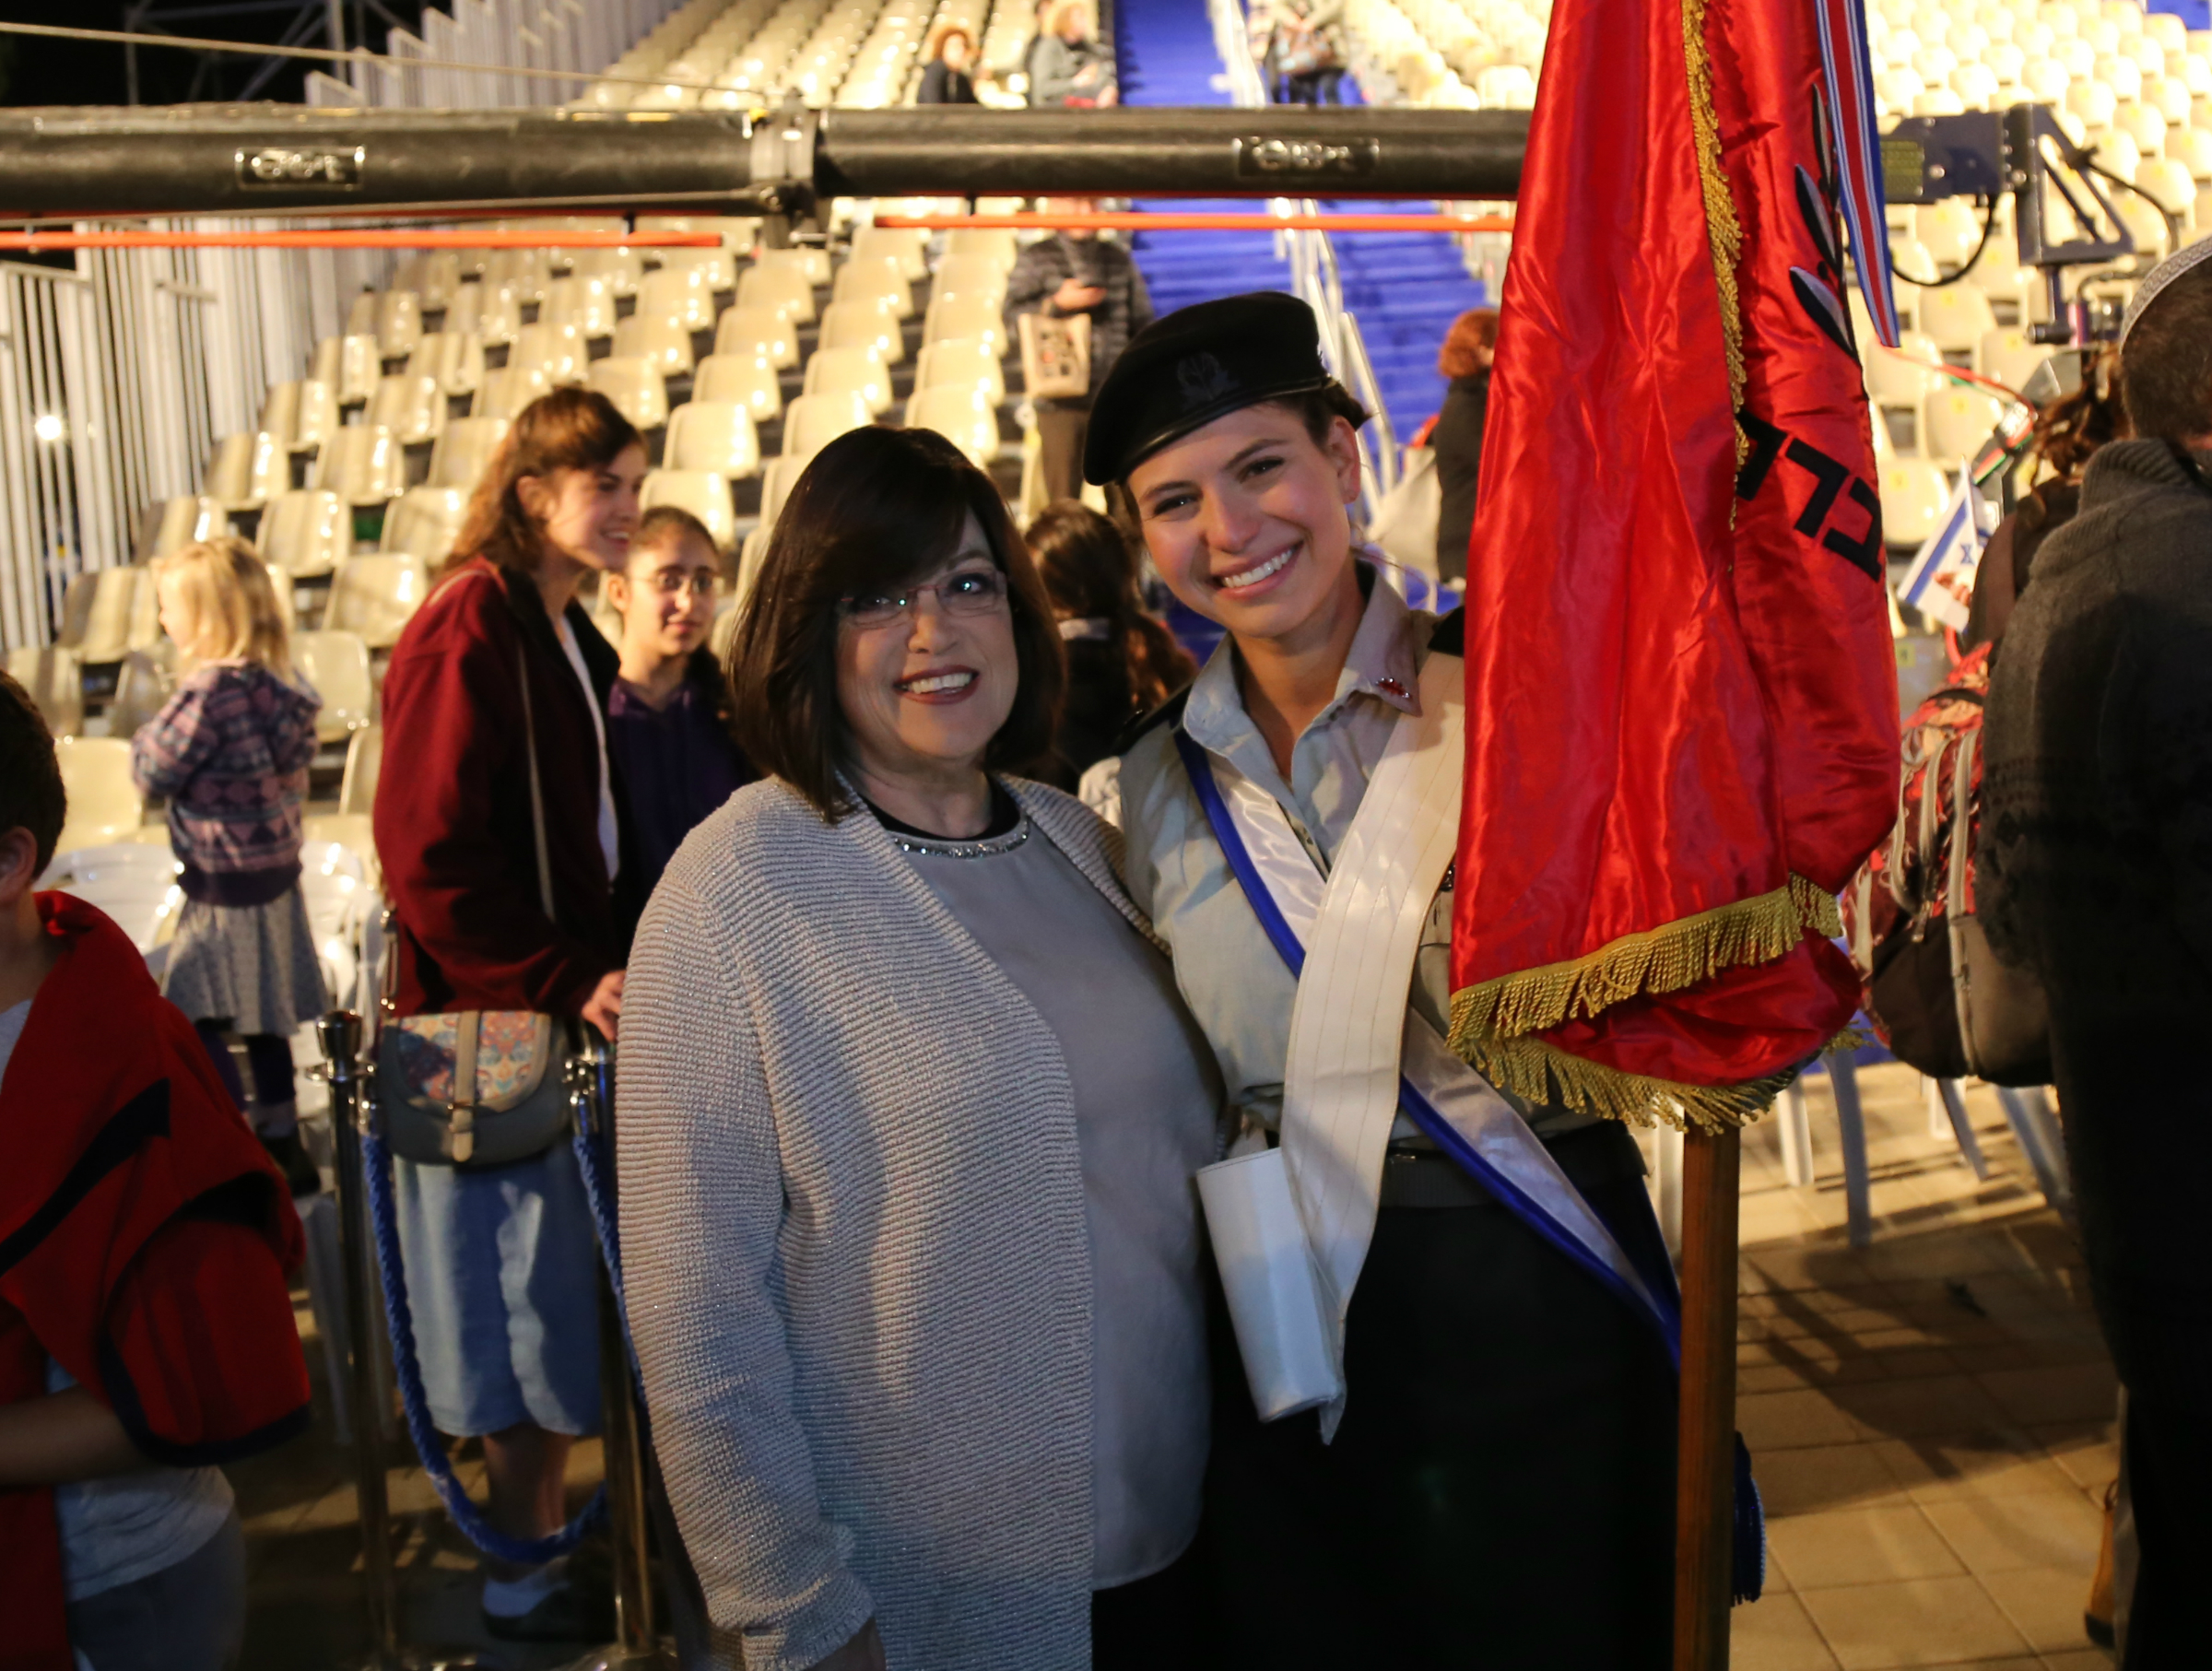 Miri Ehrenthal with a soldier at Israel independence day lighting of the torch ceremony